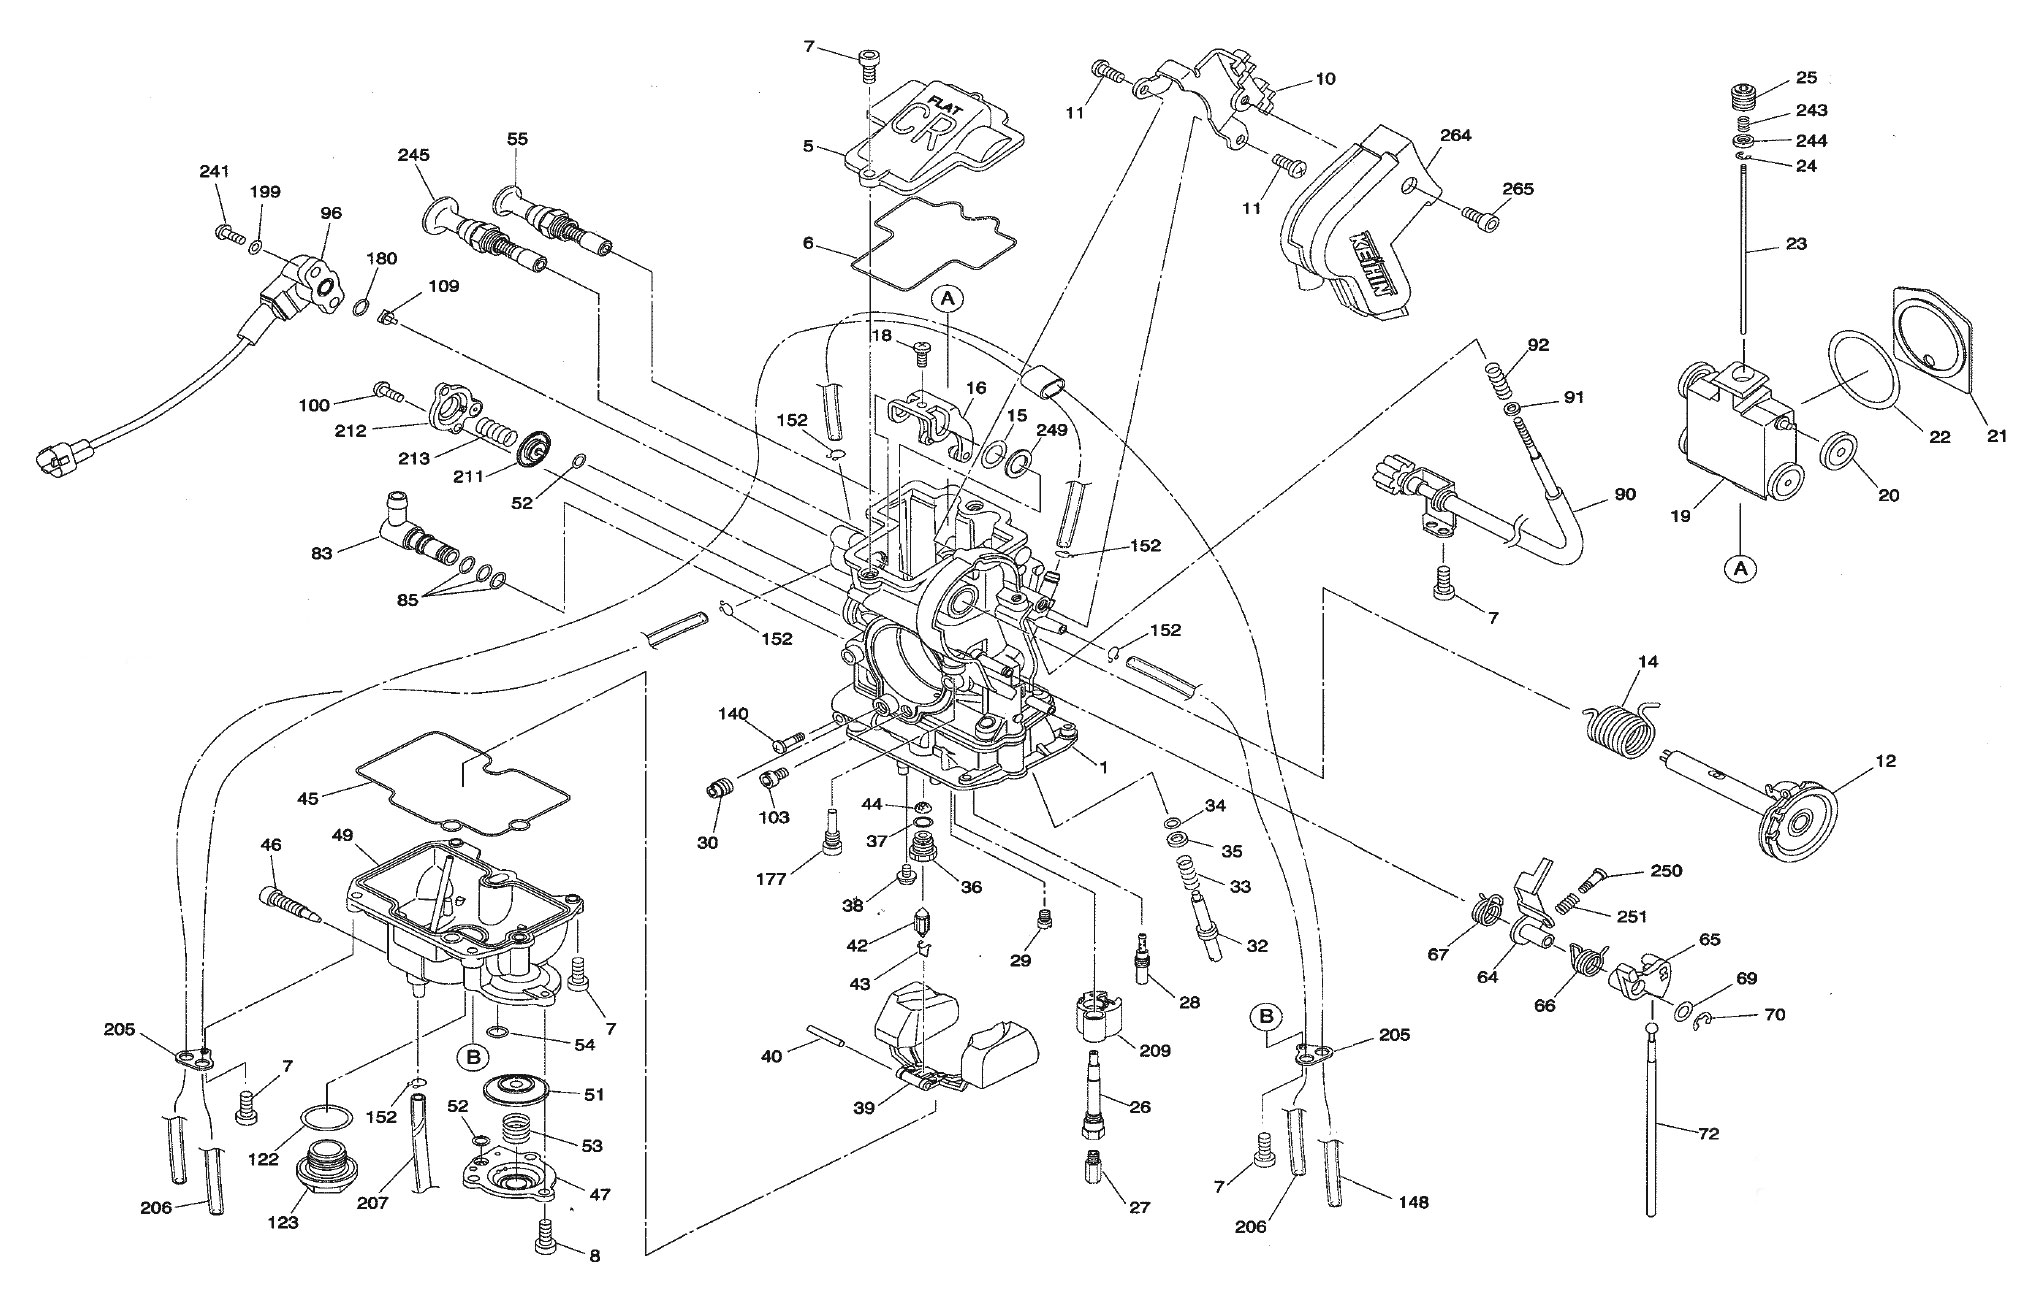 EXPLODED VIEW, PARTS DIAGRAM: Keihin FCR MX 32/37/39/40/41